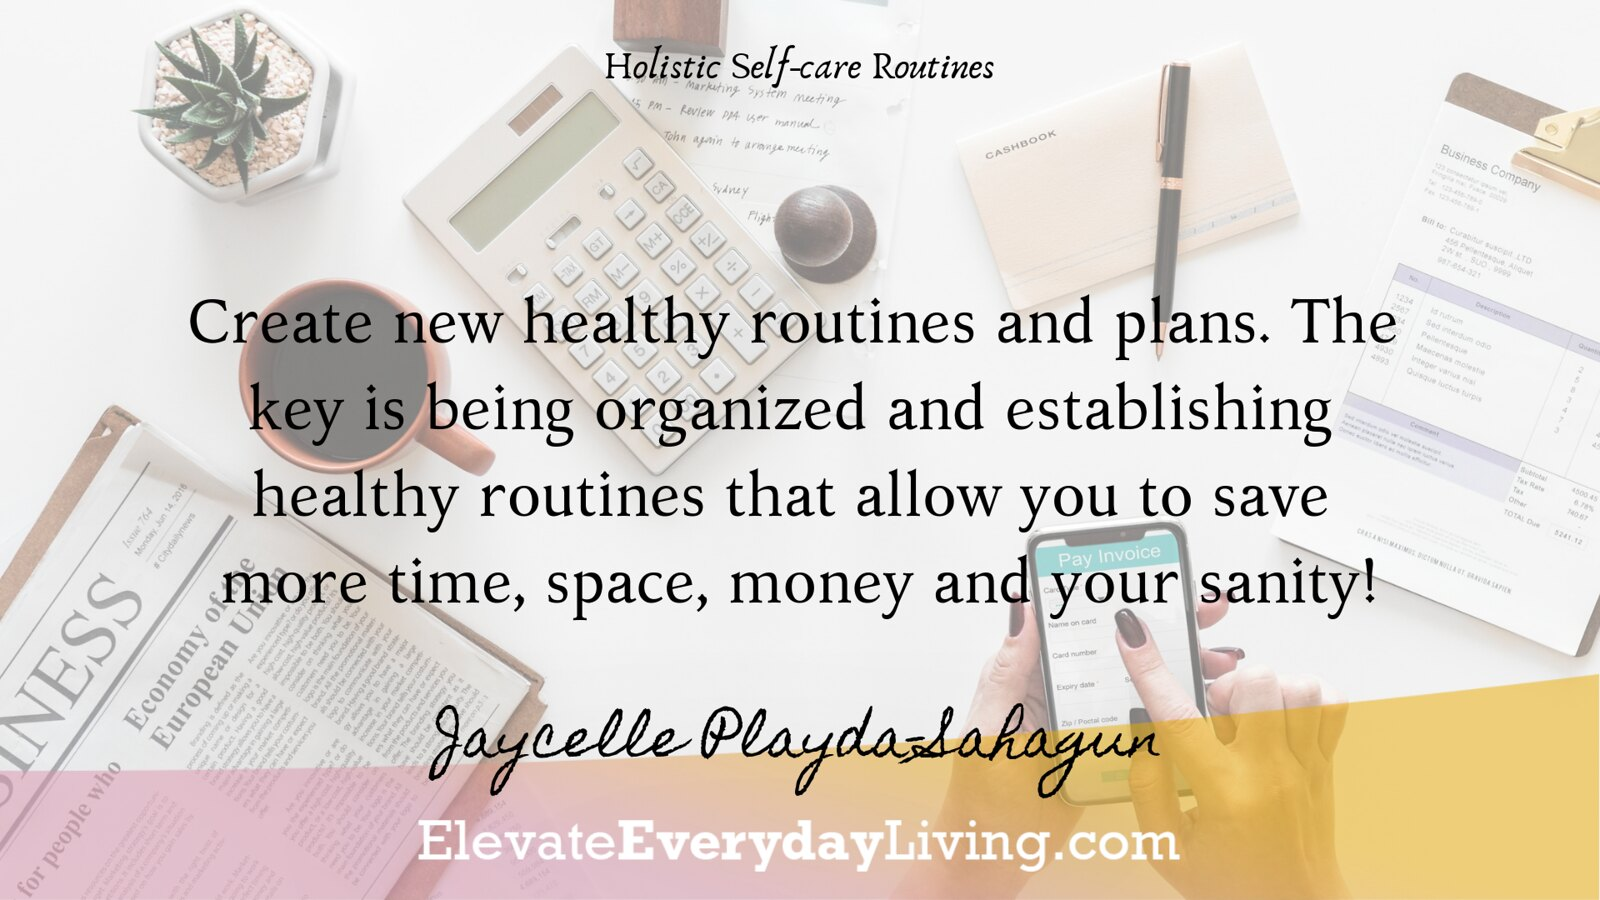 Create new healthy routines and plans